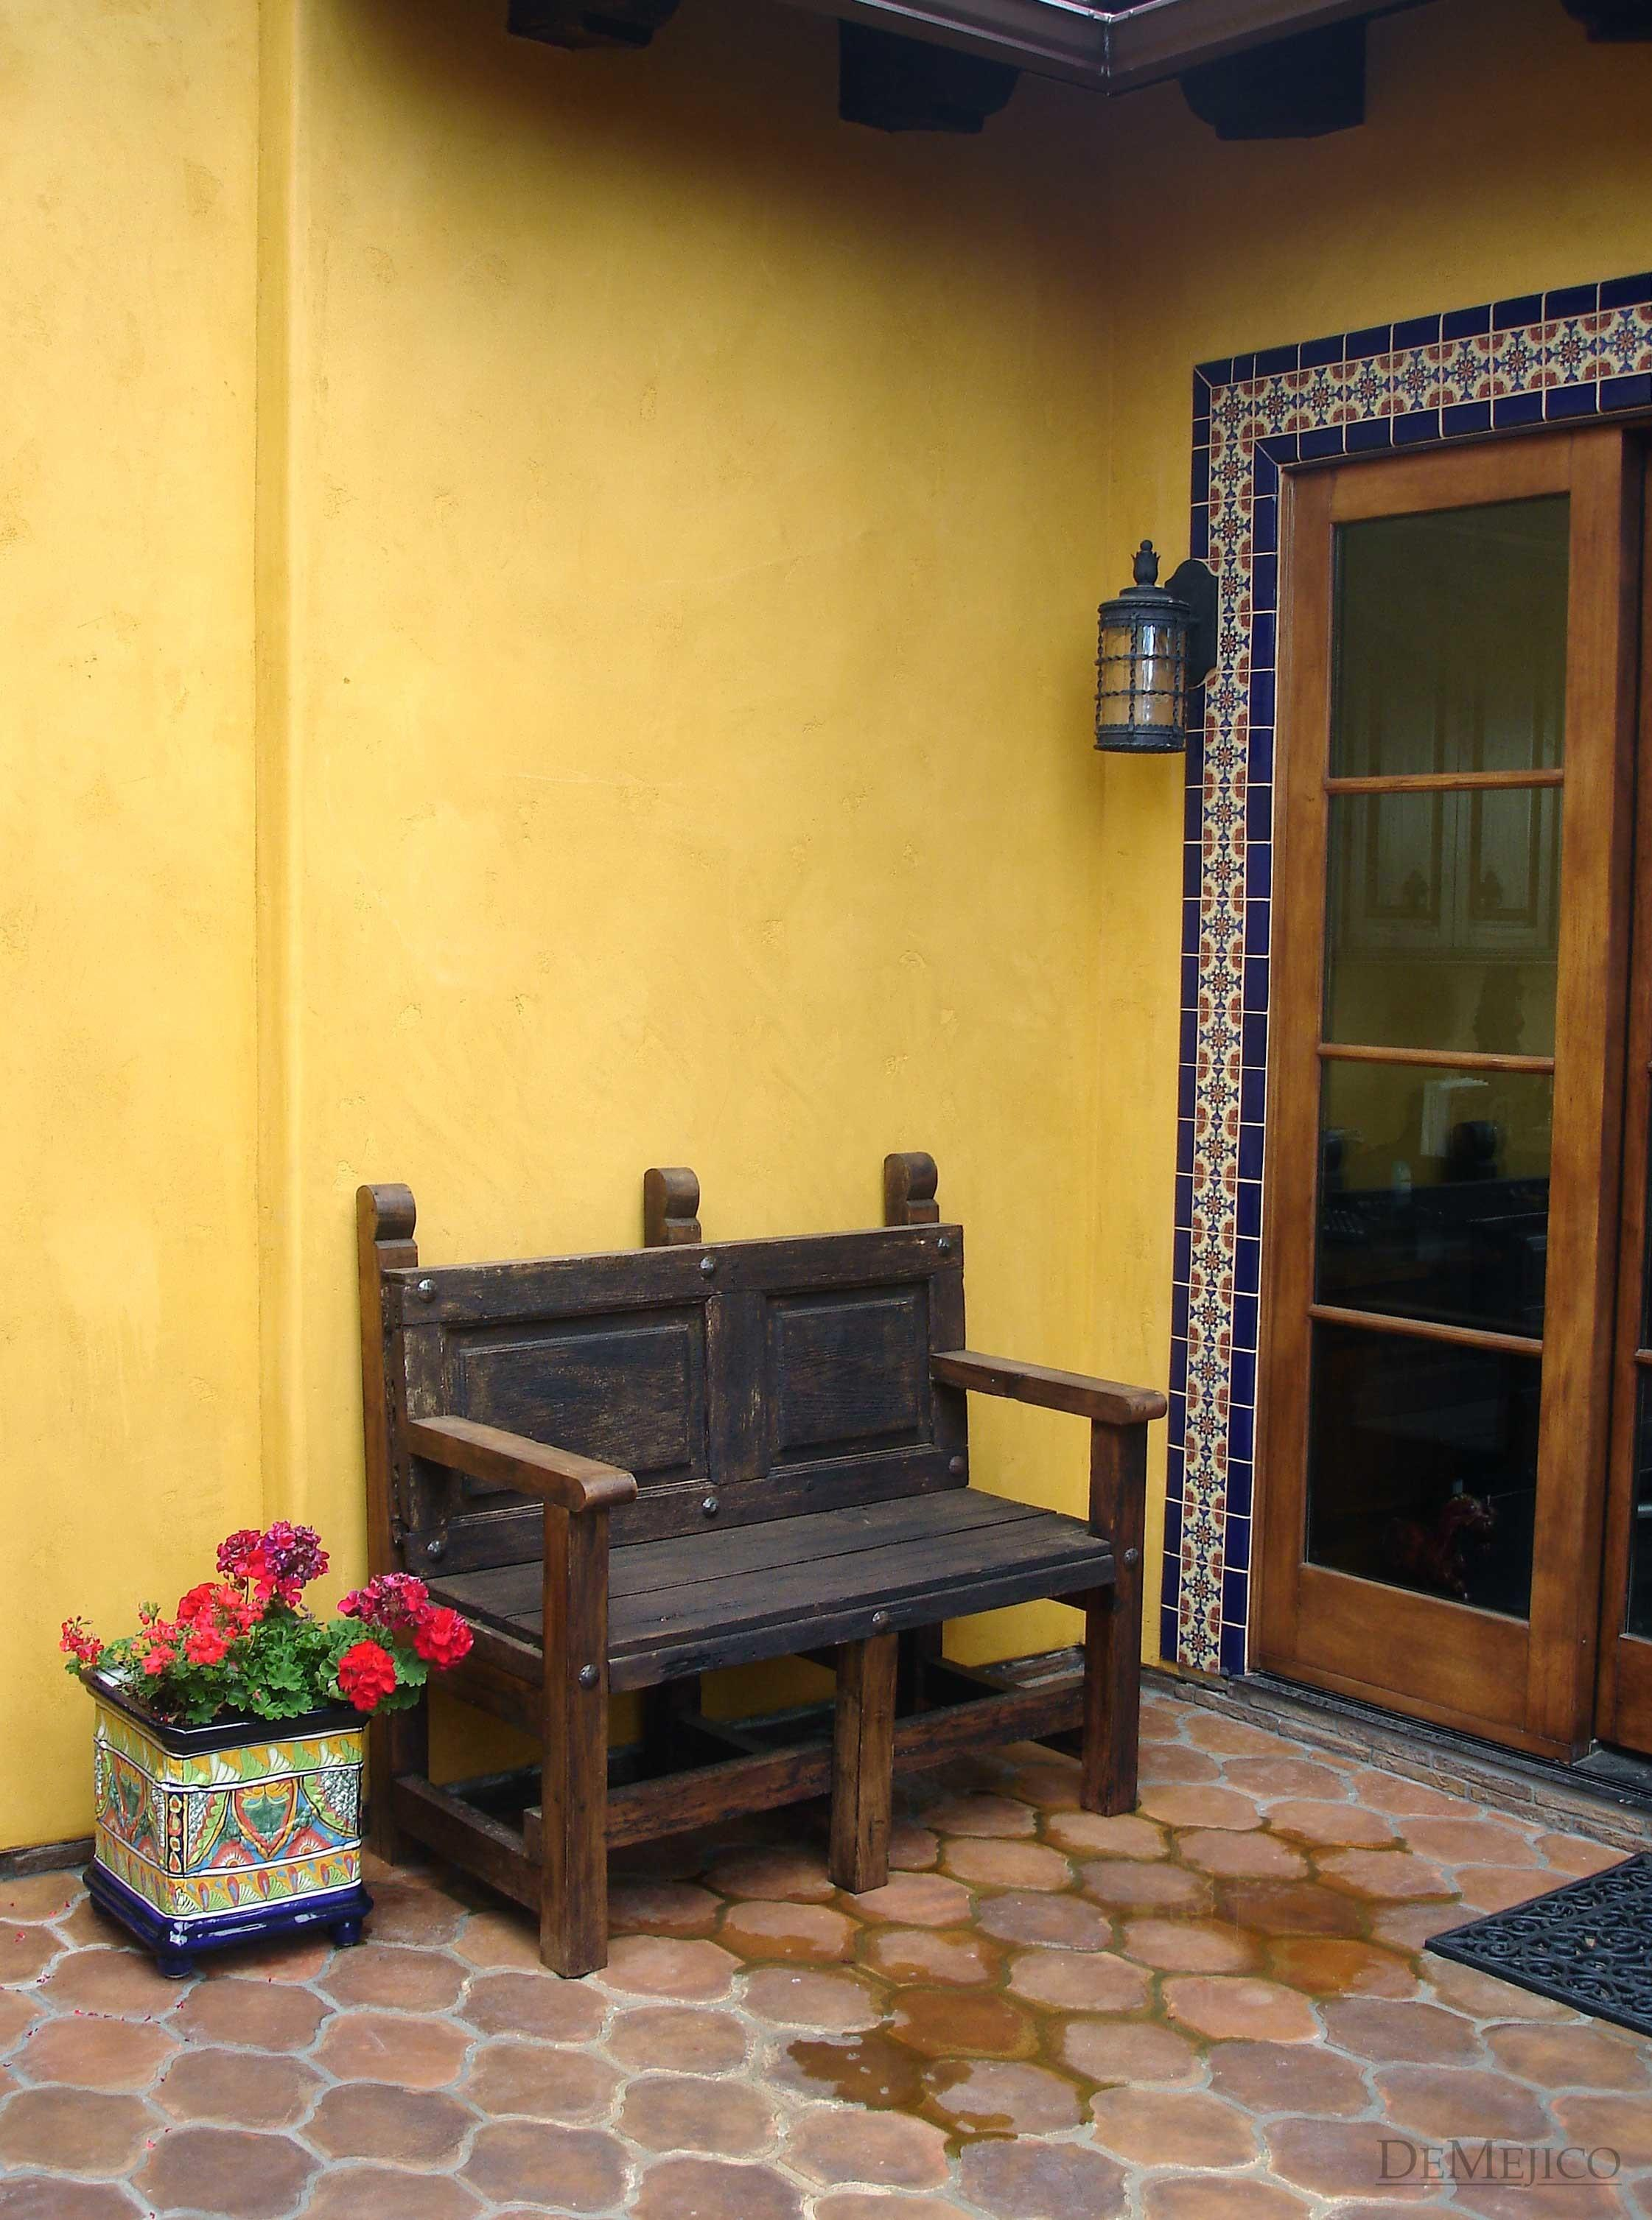 Spanish Furniture Outdoor Demejico Colonial Clipgoo